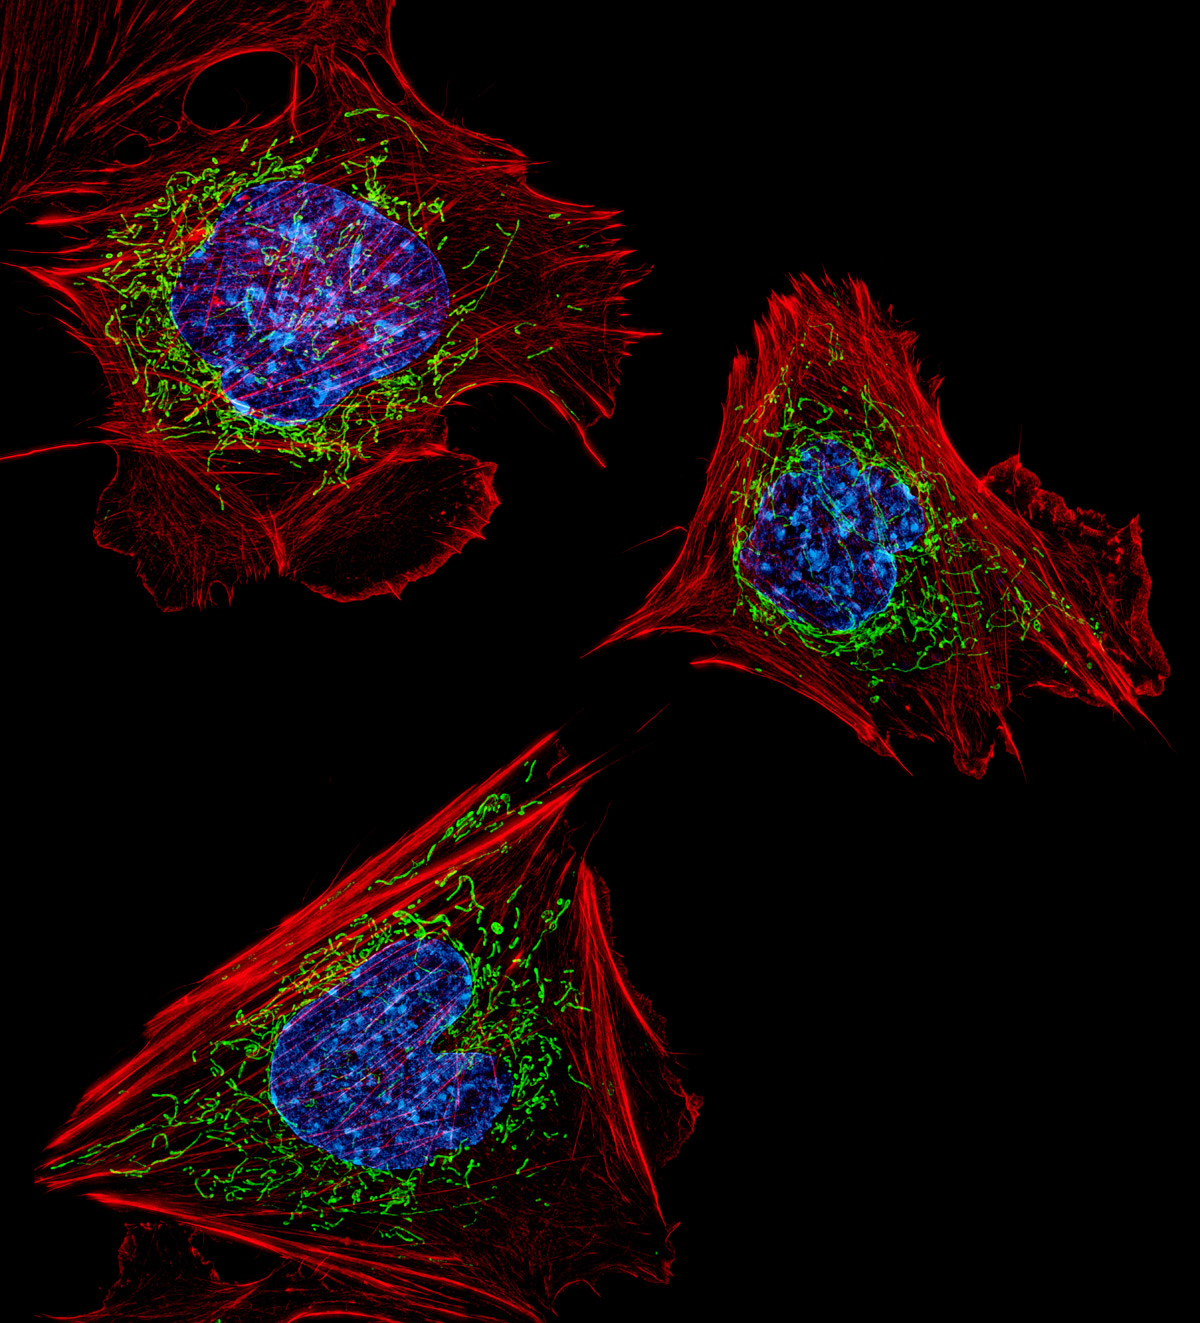 2013--5-Burnette-mouse-fibroblasts-large-file